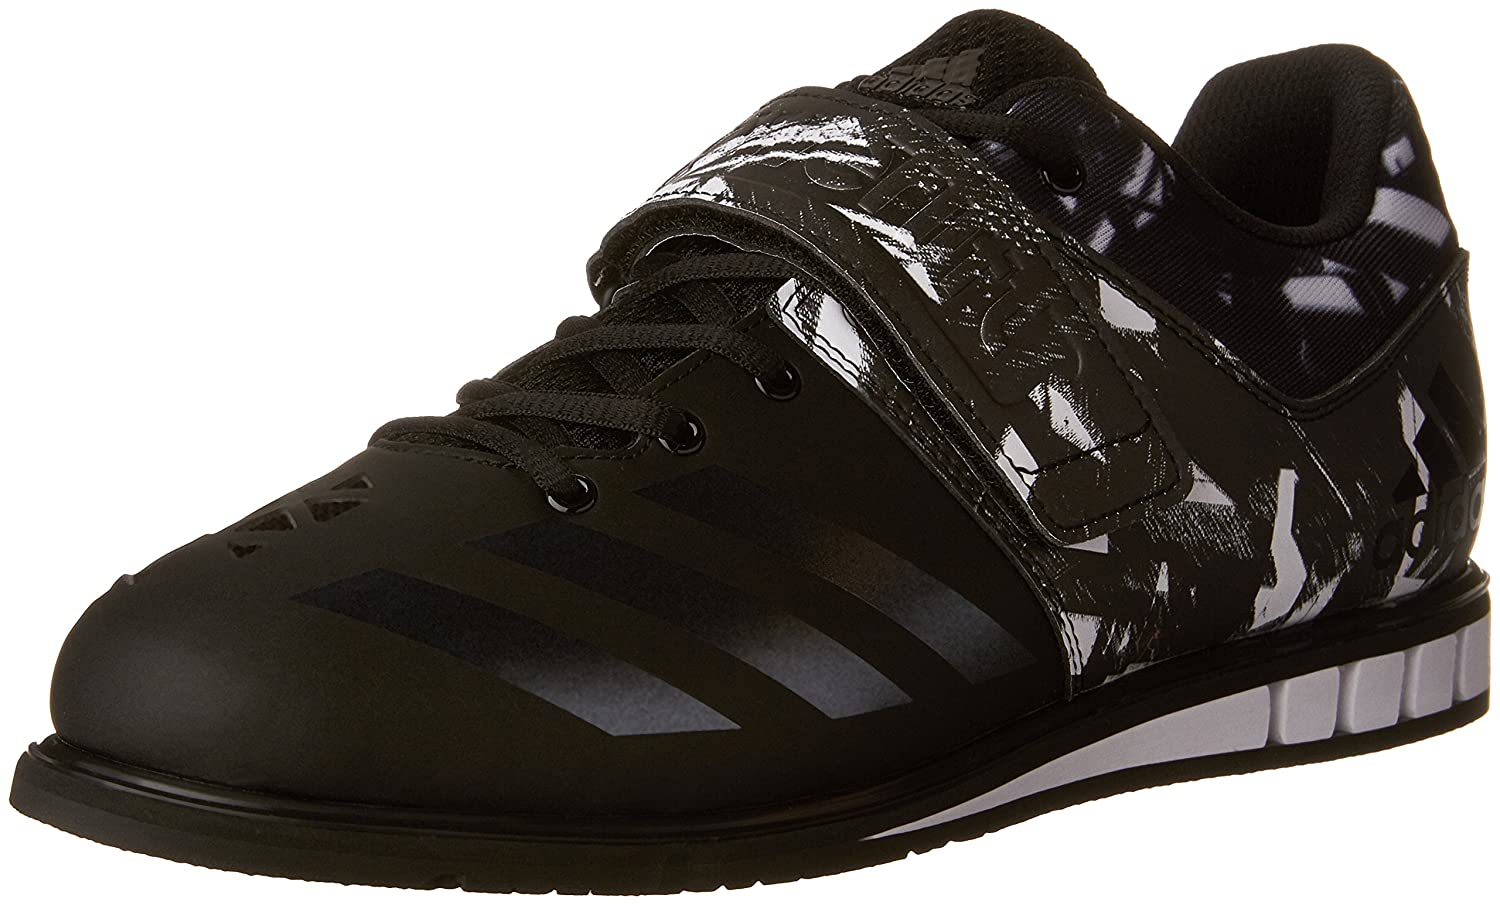 adidas Men's Powerlift.3 Cross-Trainer Shoes B01H1BHFOY 5 M US|Black/Black/White